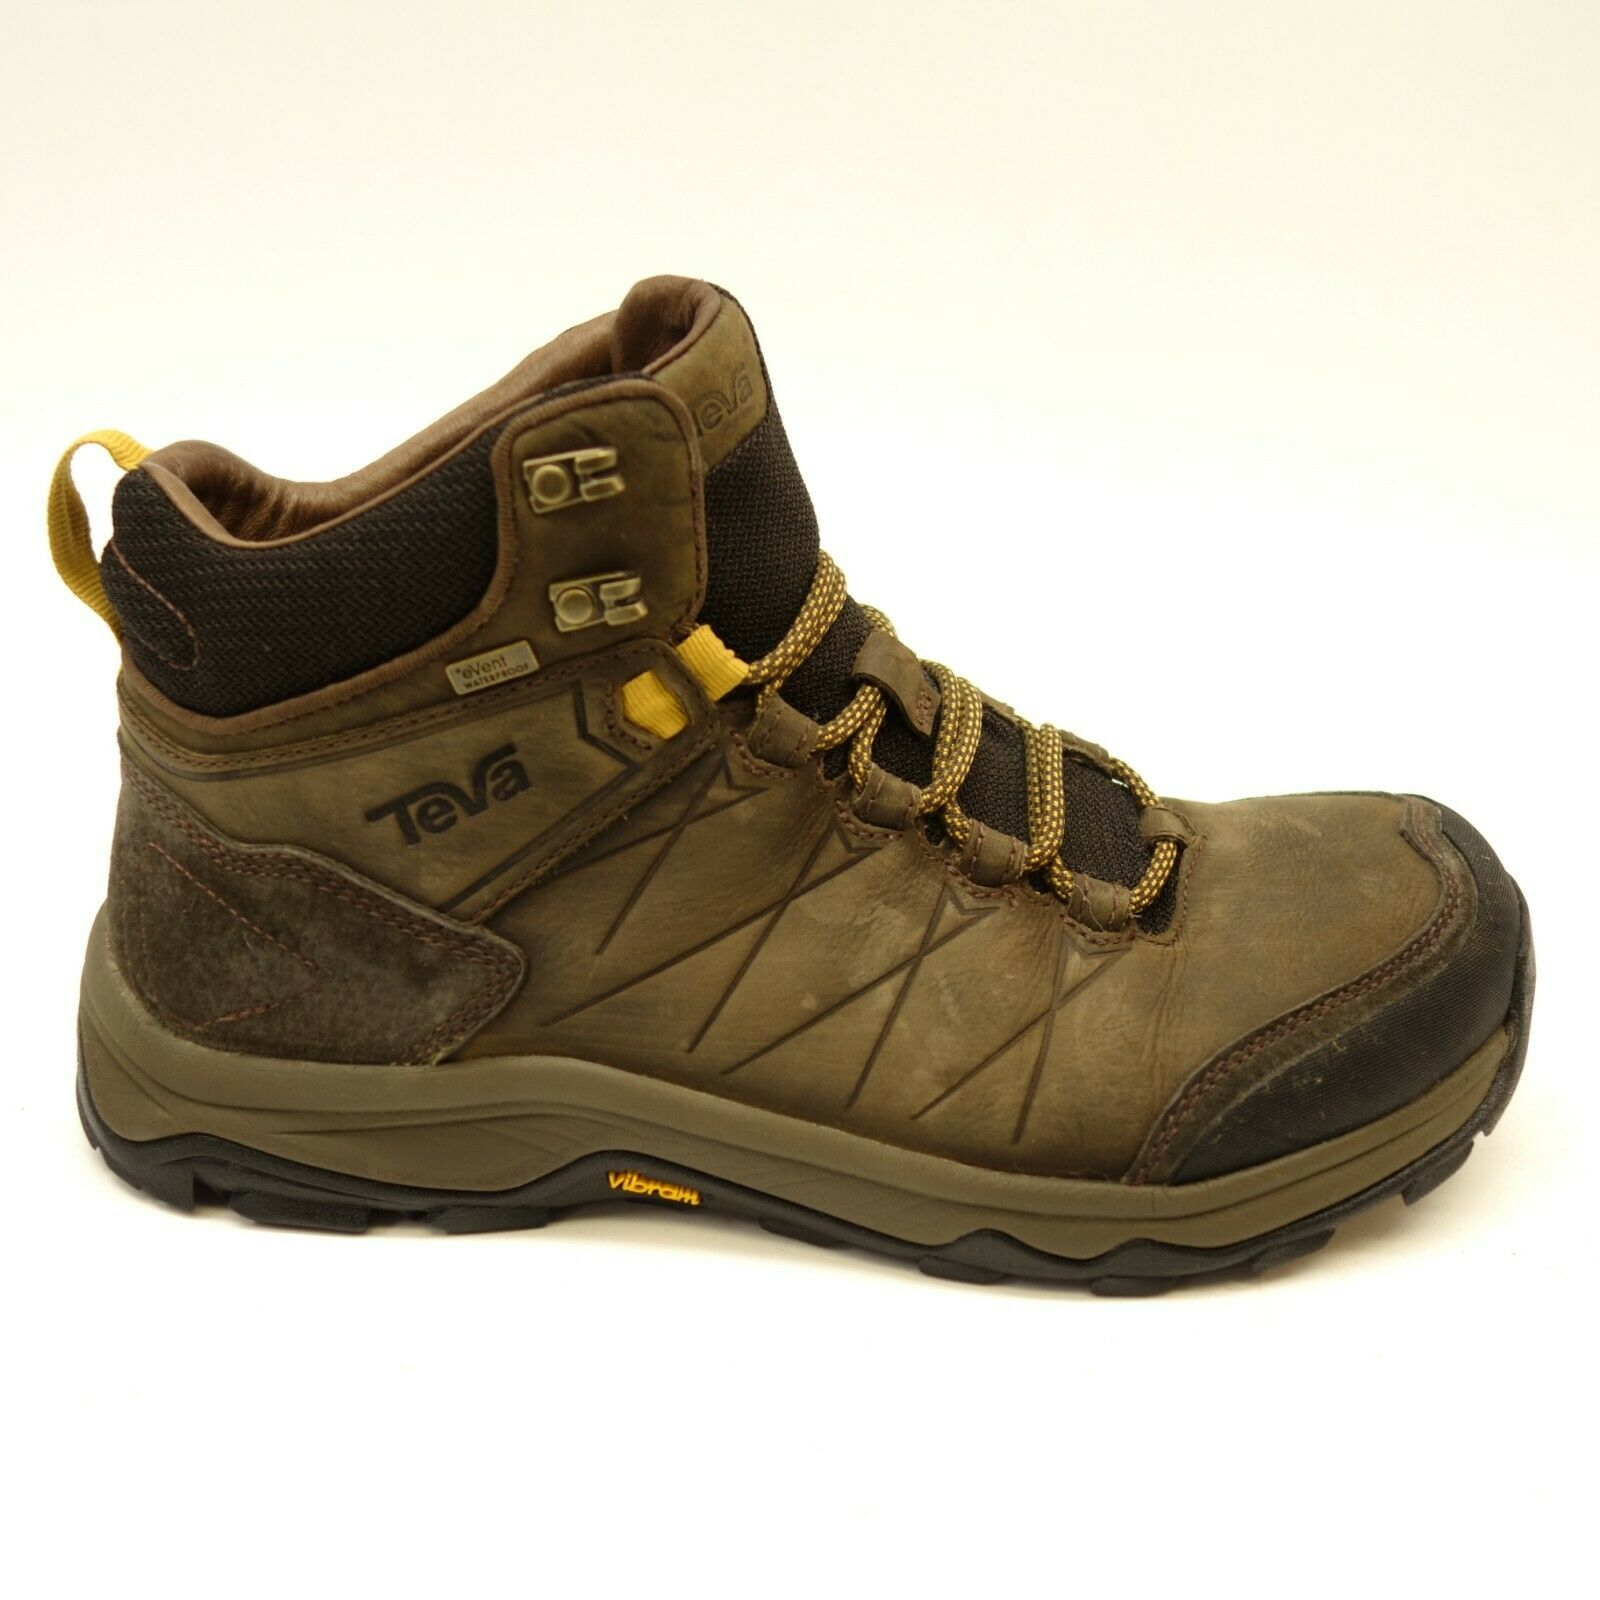 Teva Mens Arrowood Riva Brown Event Mid Waterproof Hiking Trail shoes Size 9